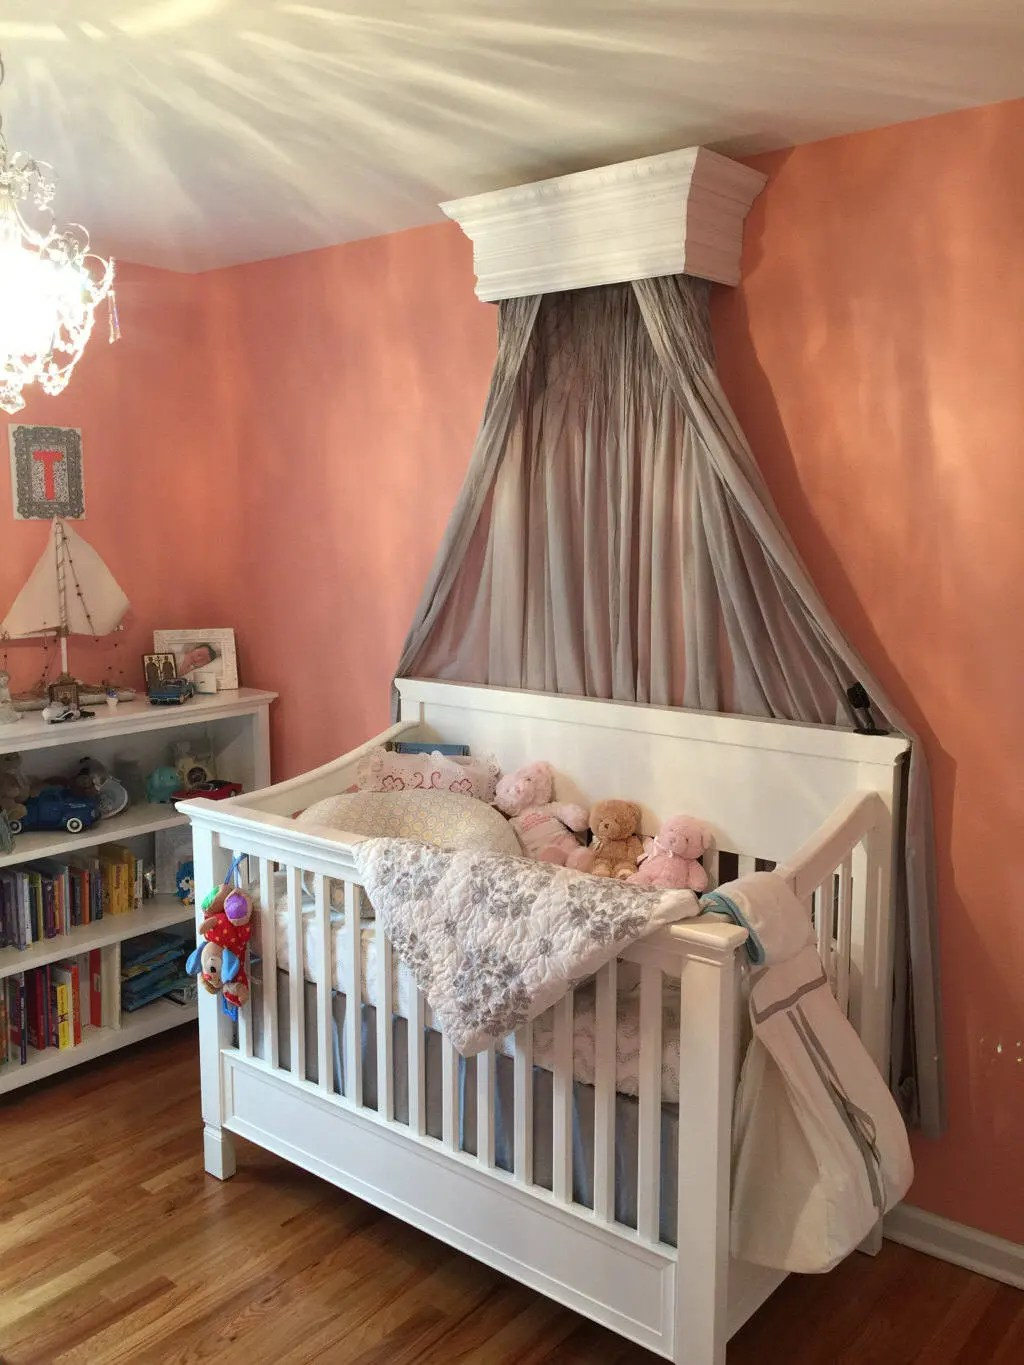 Bed Crown Canopy Crib Crown Unpainted Wall Teester Bedroom on Wall Teester Bed Crown  id=54419